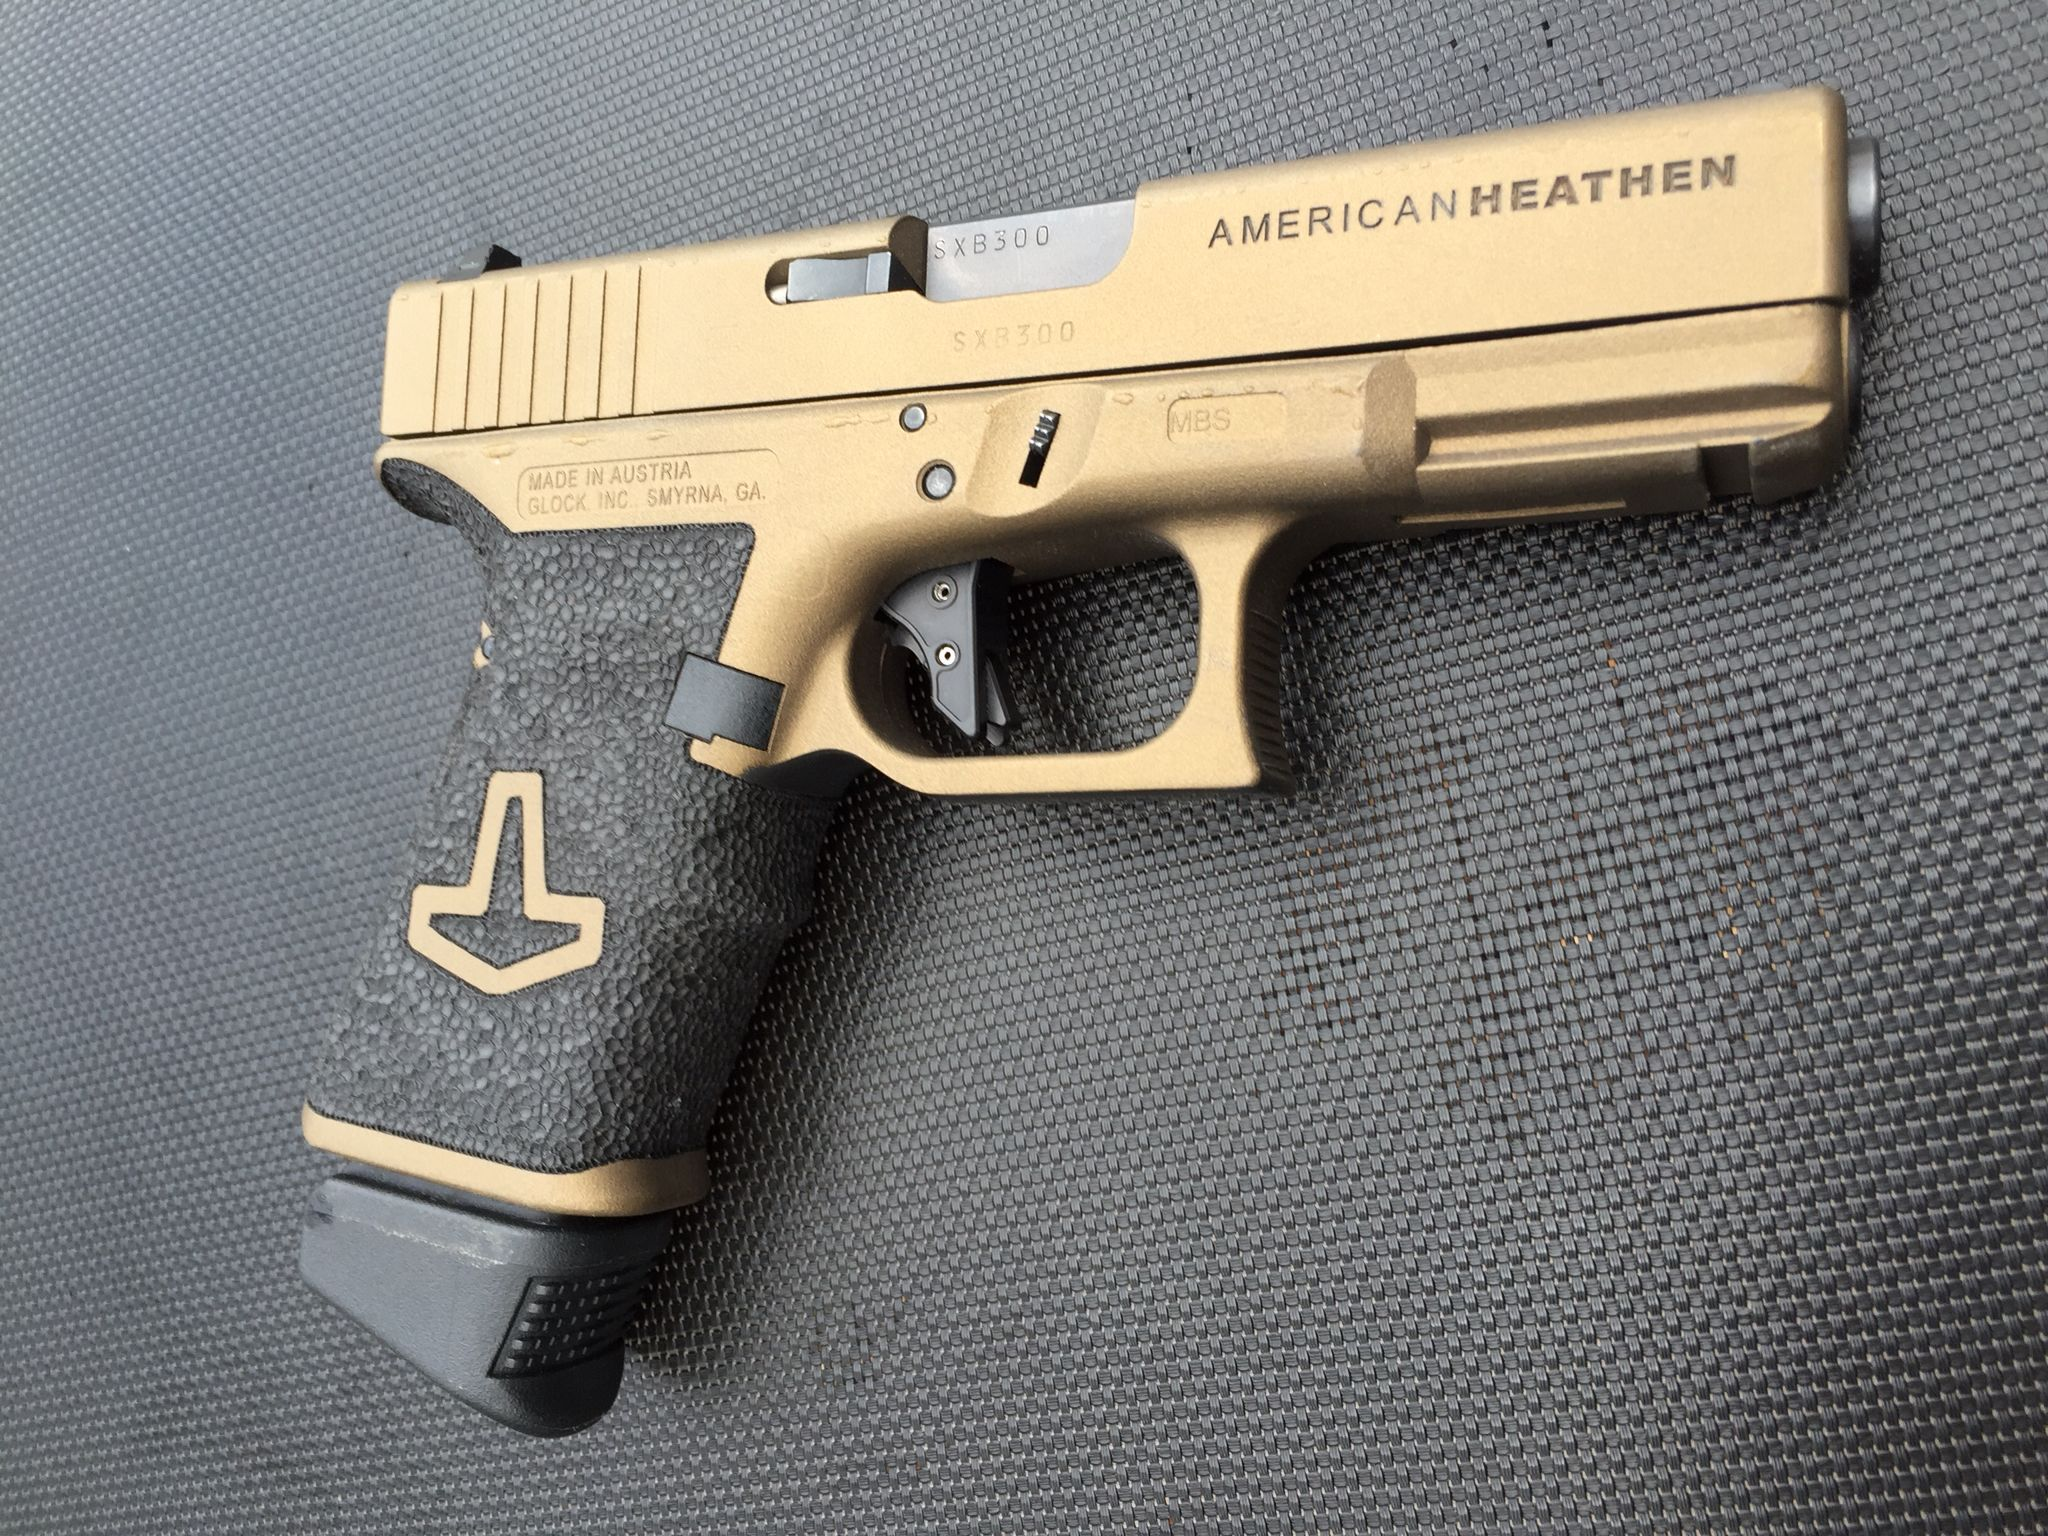 Another of a few photos of my new Overwatch Customs version of a American Heathen G23 including the GlockKraft D.A.T. 2 tactical trigger. Very clean, I'm very happy with the finished weapon.